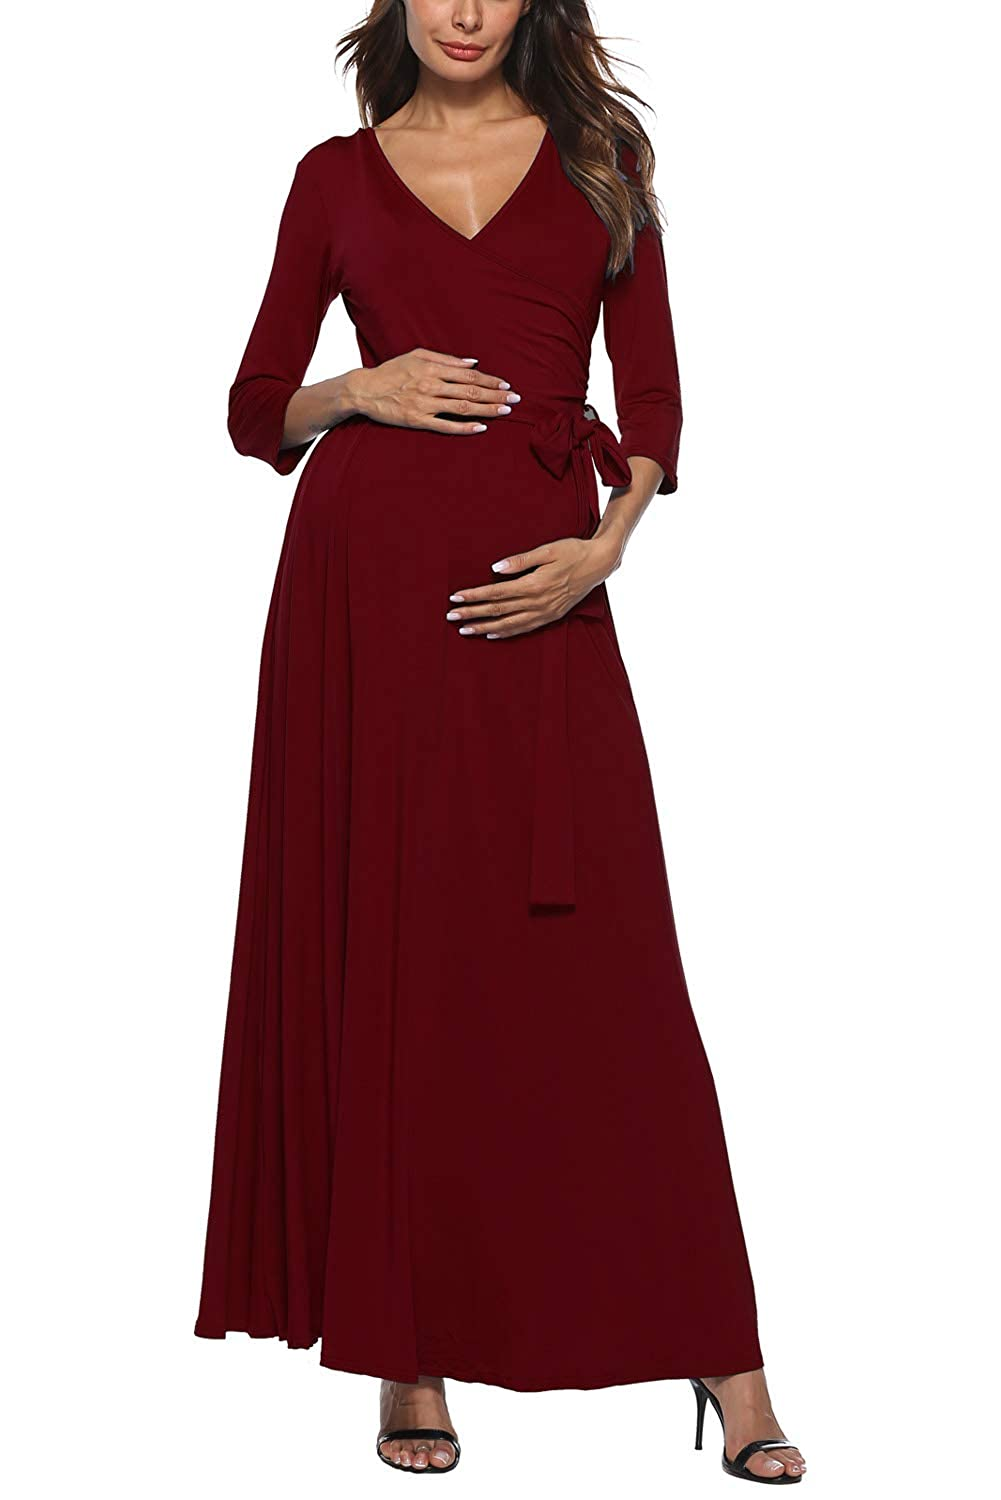 Long Maternity Dress Maxi Wrap V Neck 3 4 Sleeve Baby Shower